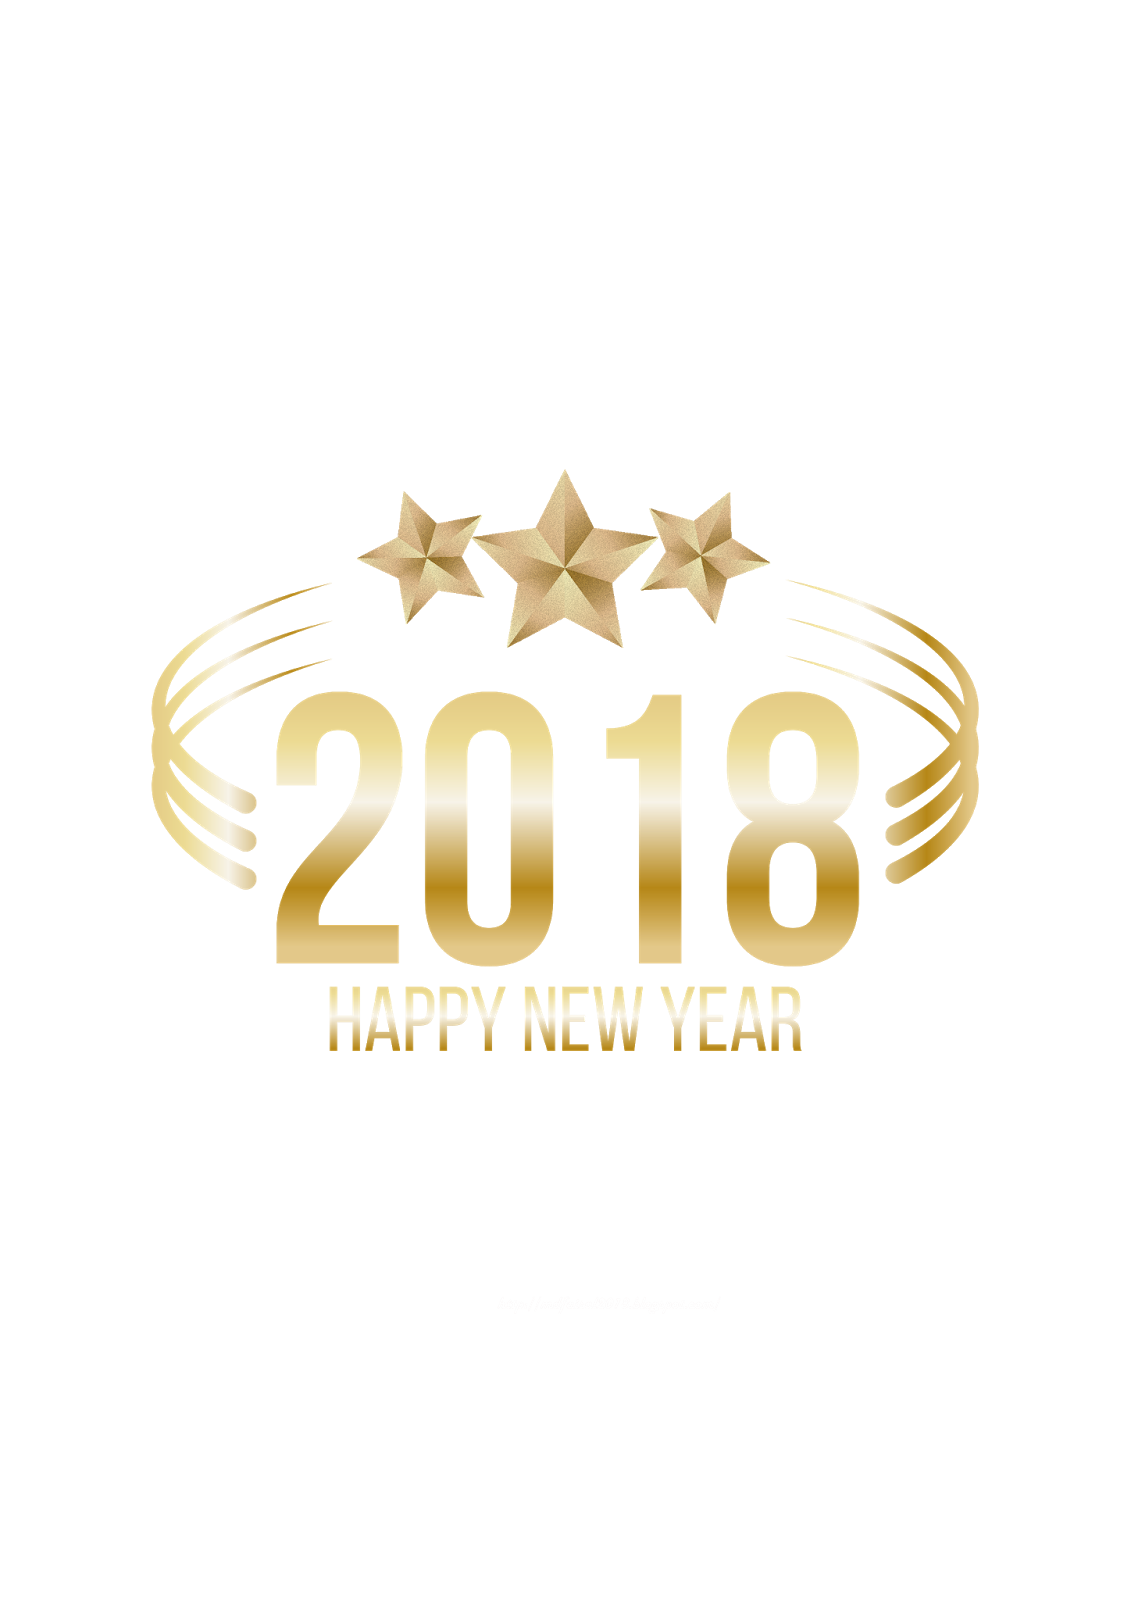 Happy 2018 png. New year photo md